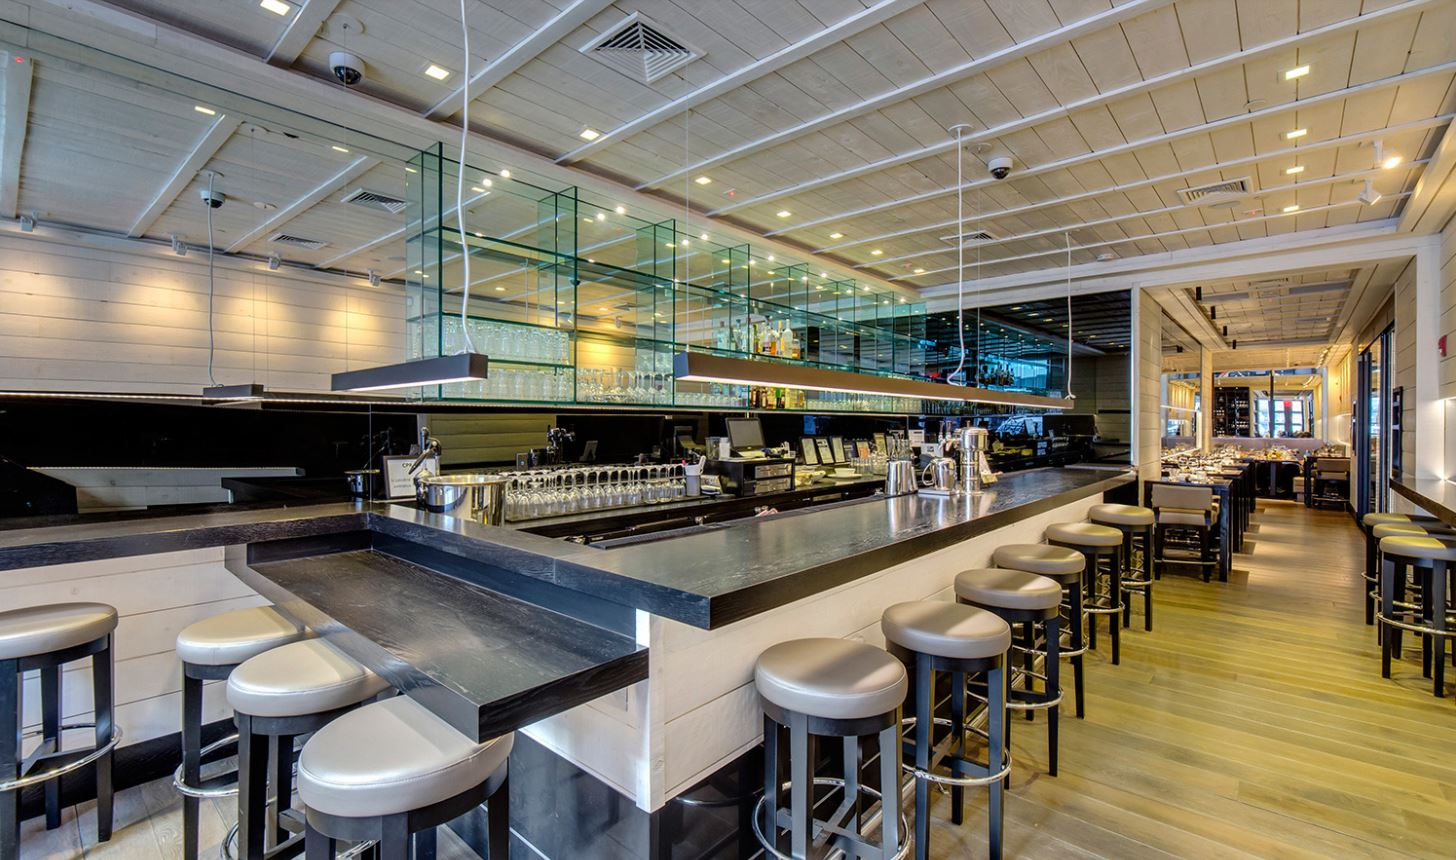 Grey bar seating facing glass shelving in Le Coq Rico, a sophisticated bistro and bar by a renowned French chef. MEP provided by 2L Engineering, a New York firm.